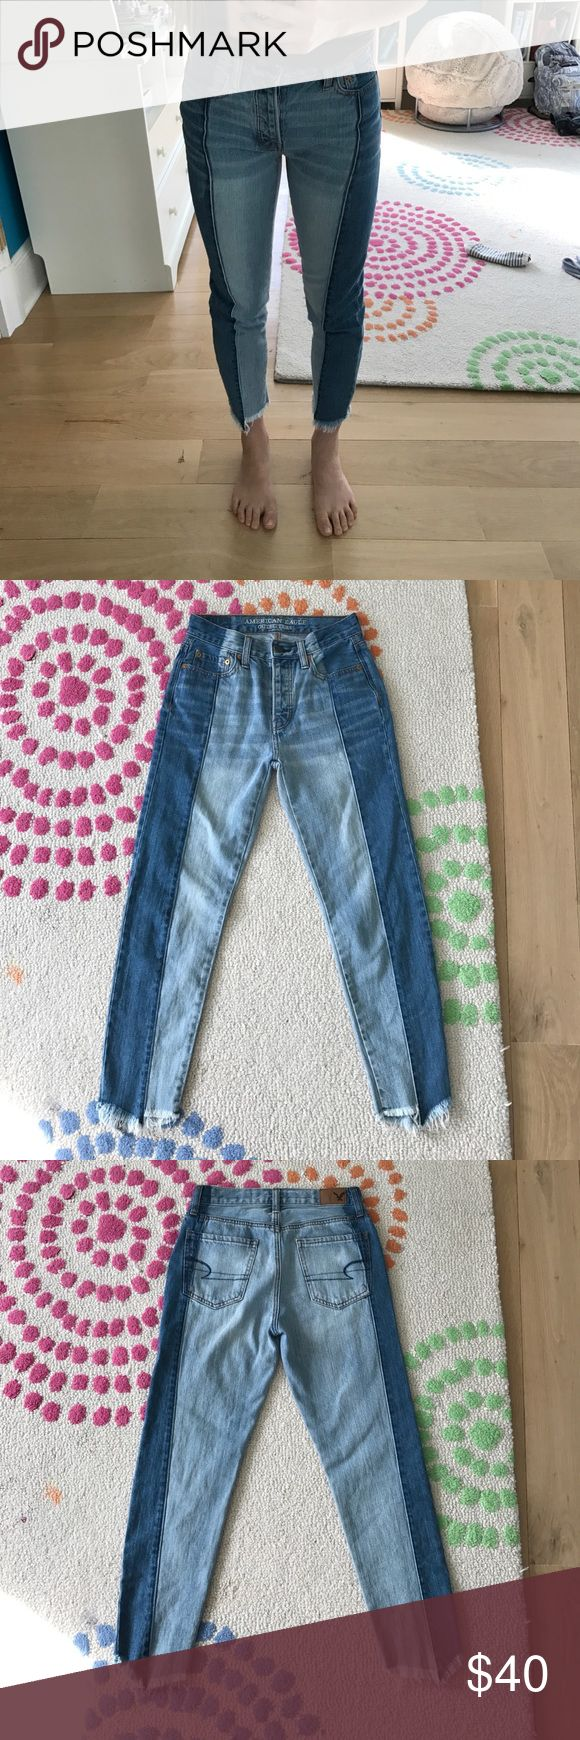 American Eagle Two Tone Vintage Hi Rise Jeans Size 00  2tone light wash/medium wash american eagle jeans vintage hi rise style. These are absolutely adorable and fit right above the ankle. They have a 5 button hi rise closure, a cute frayed hem, and AE back pocket stitching. I wish these fit me but they are too small! Any questions please message me! These have never been worn but there are no tags! Price can be negotiated within reason! Waist: 23.5   Hip: 33   Rise: 10-10.5   Inseam: 25…